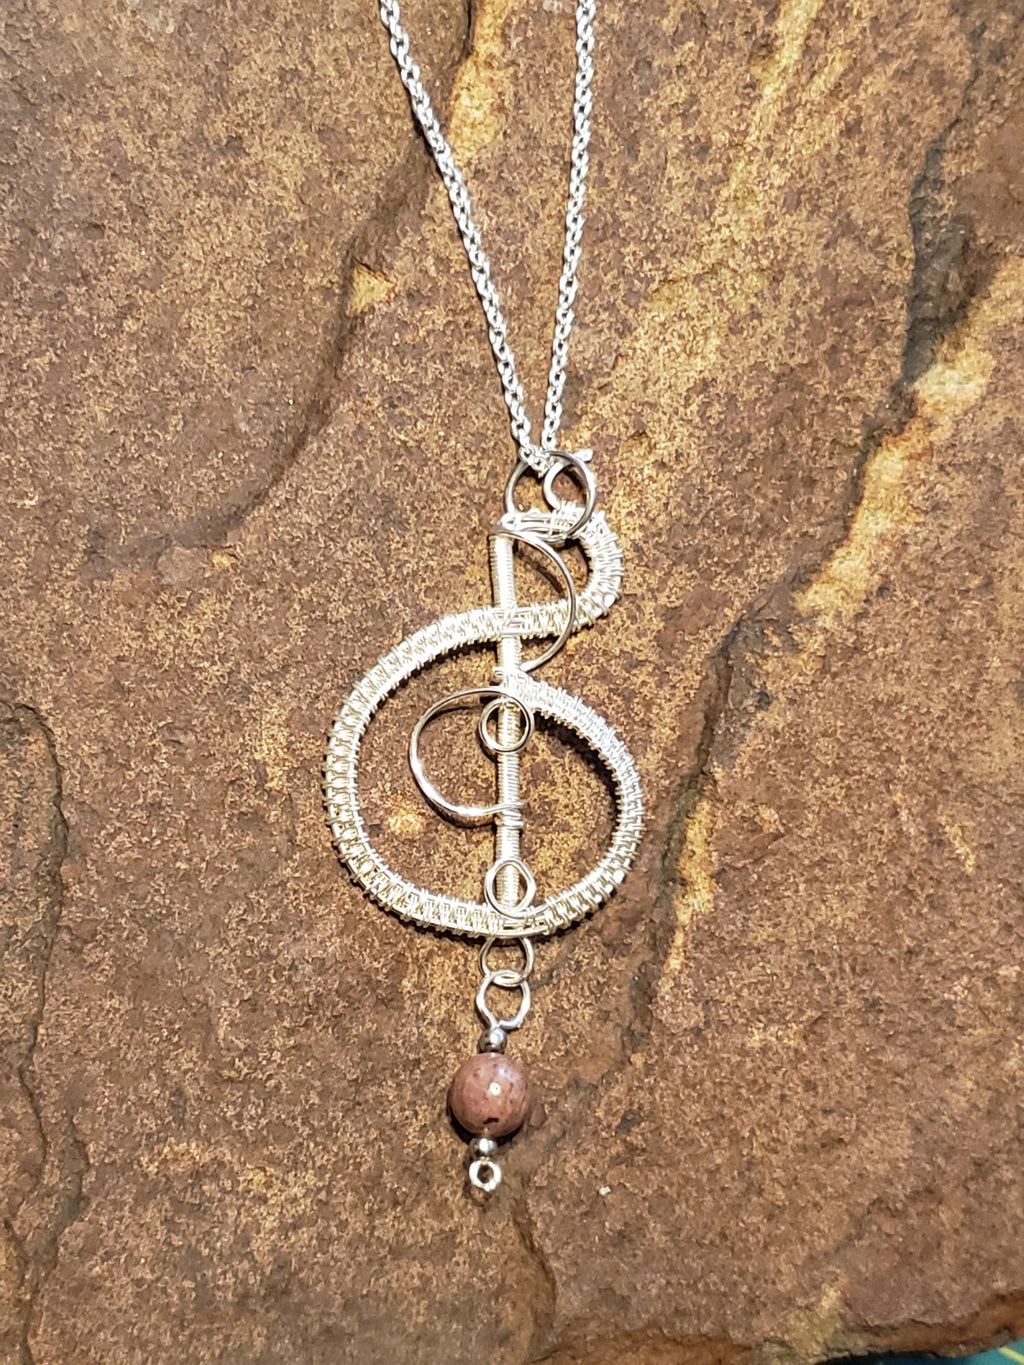 A quaint and charming music clef